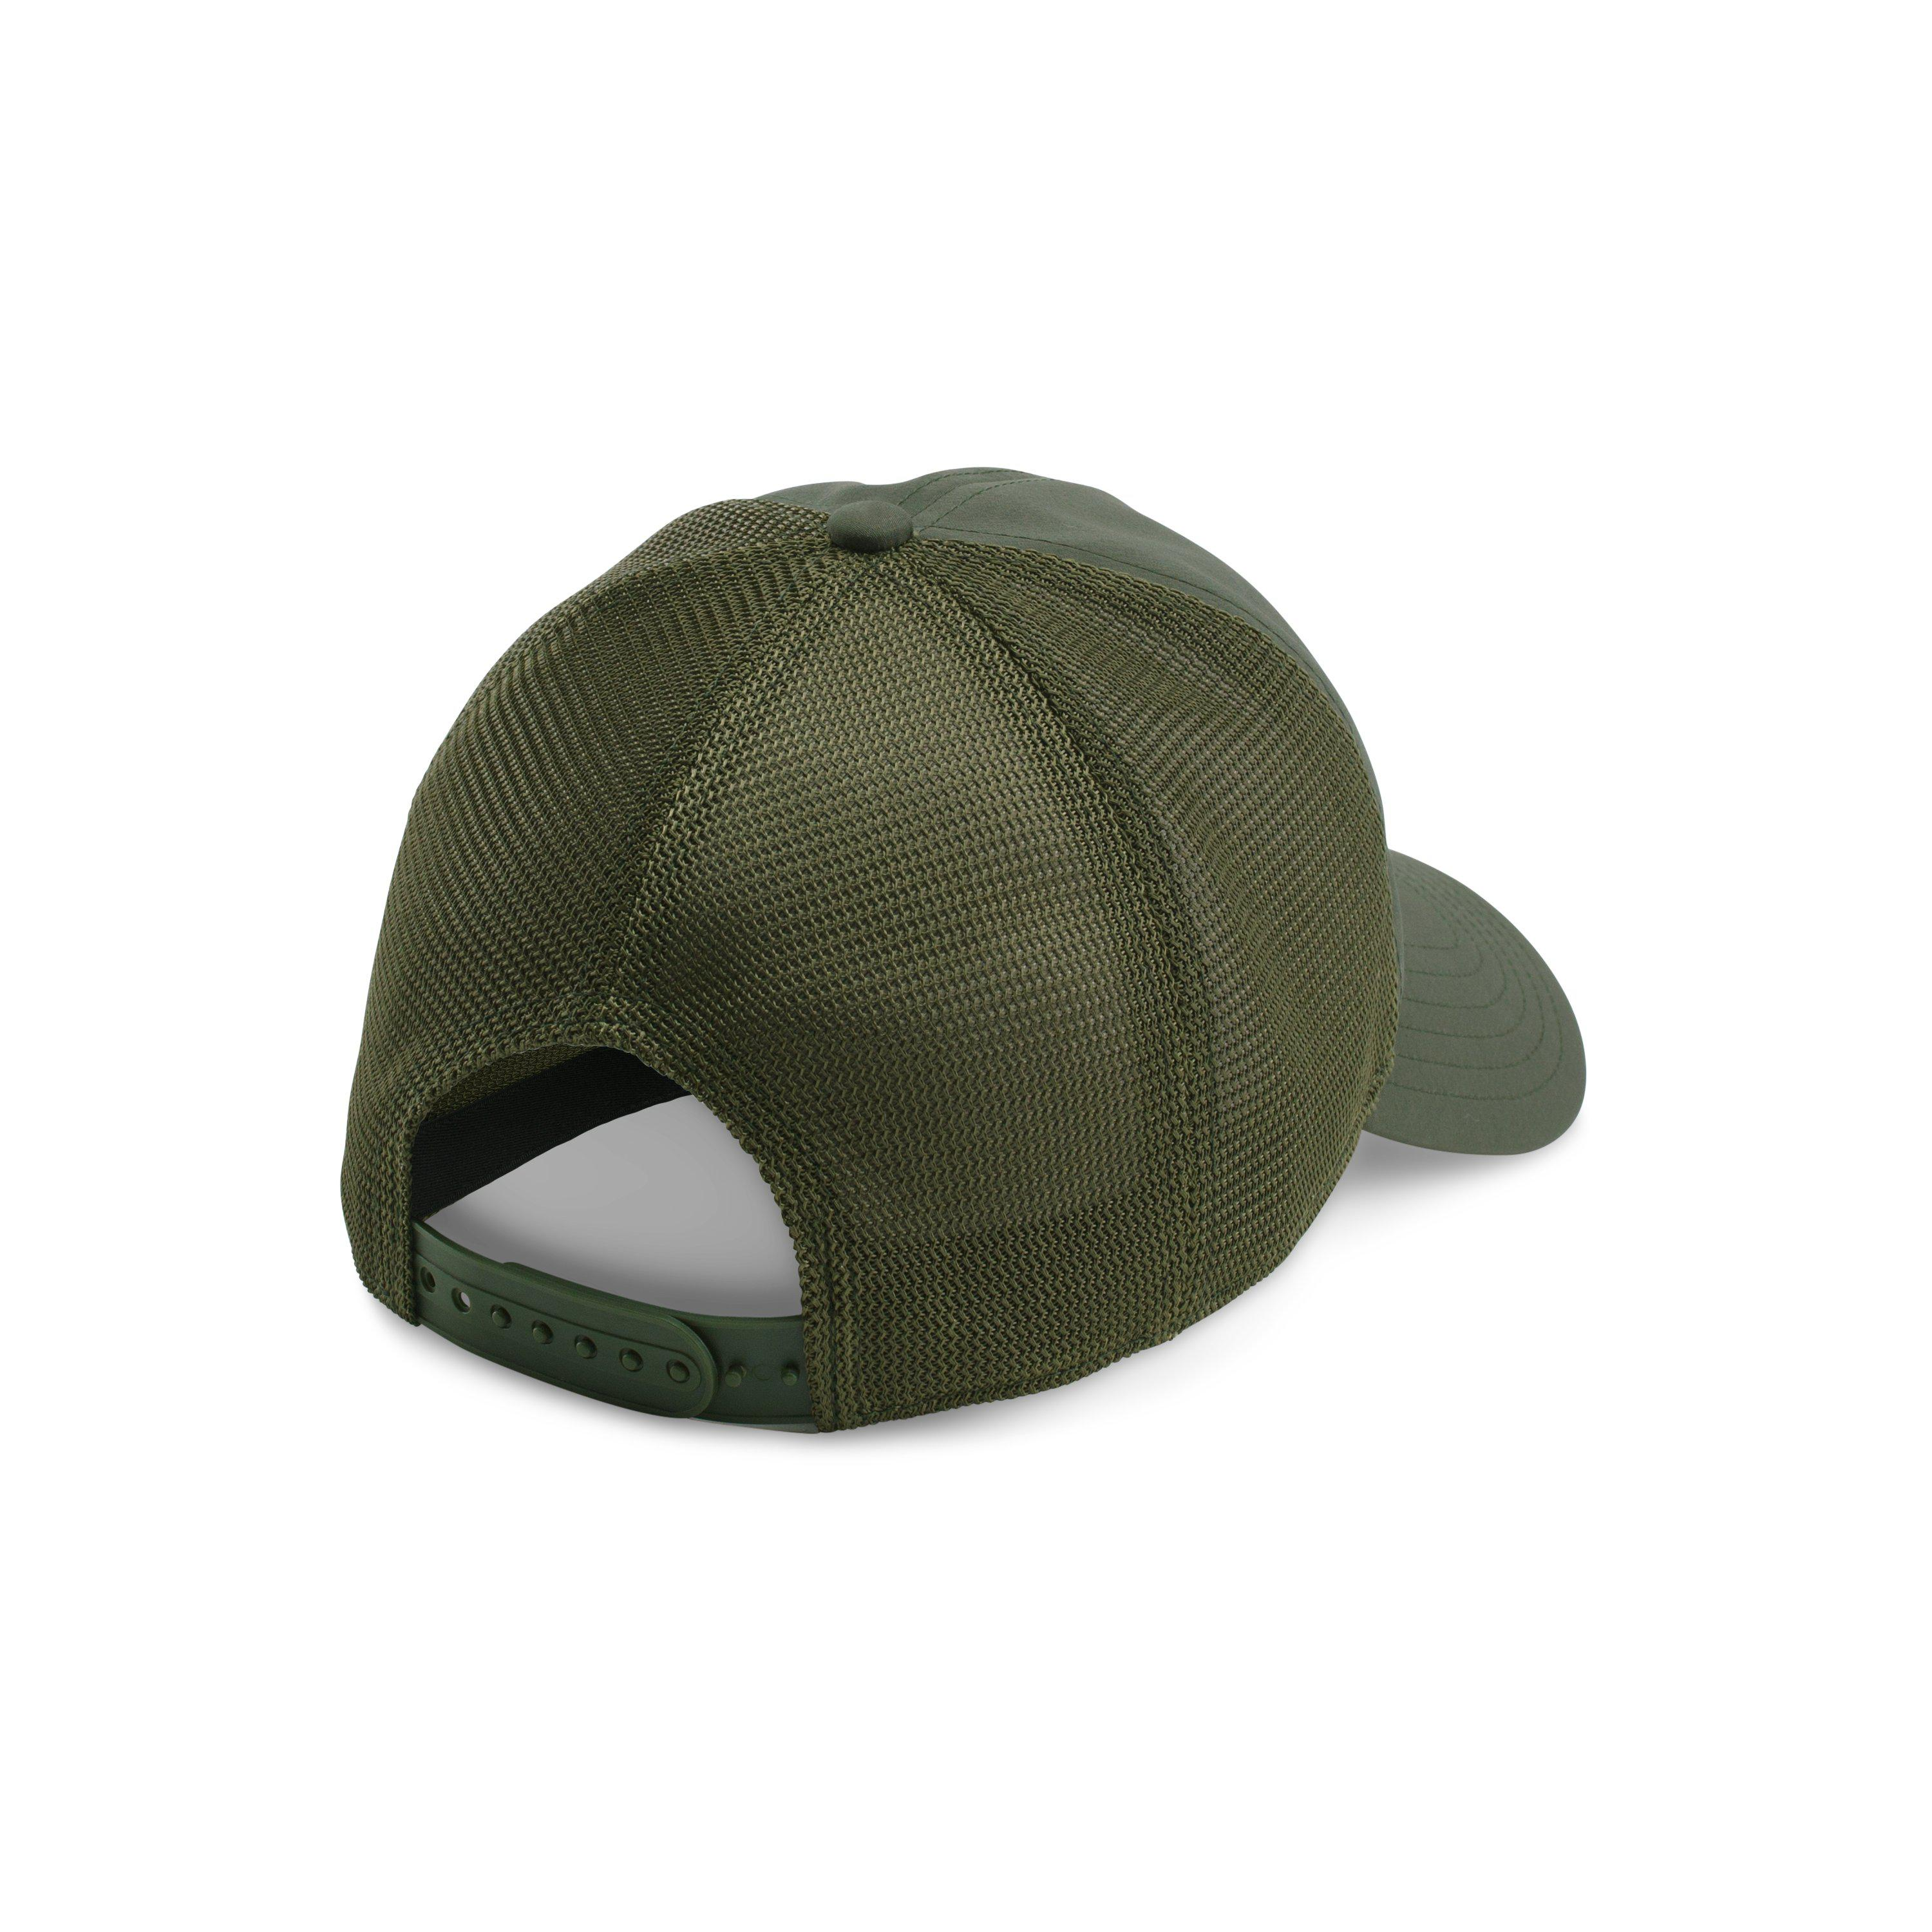 the latest c9a11 4484d canada lyst under armour mens ua classic mesh back cap in green for men  260b7 ed014